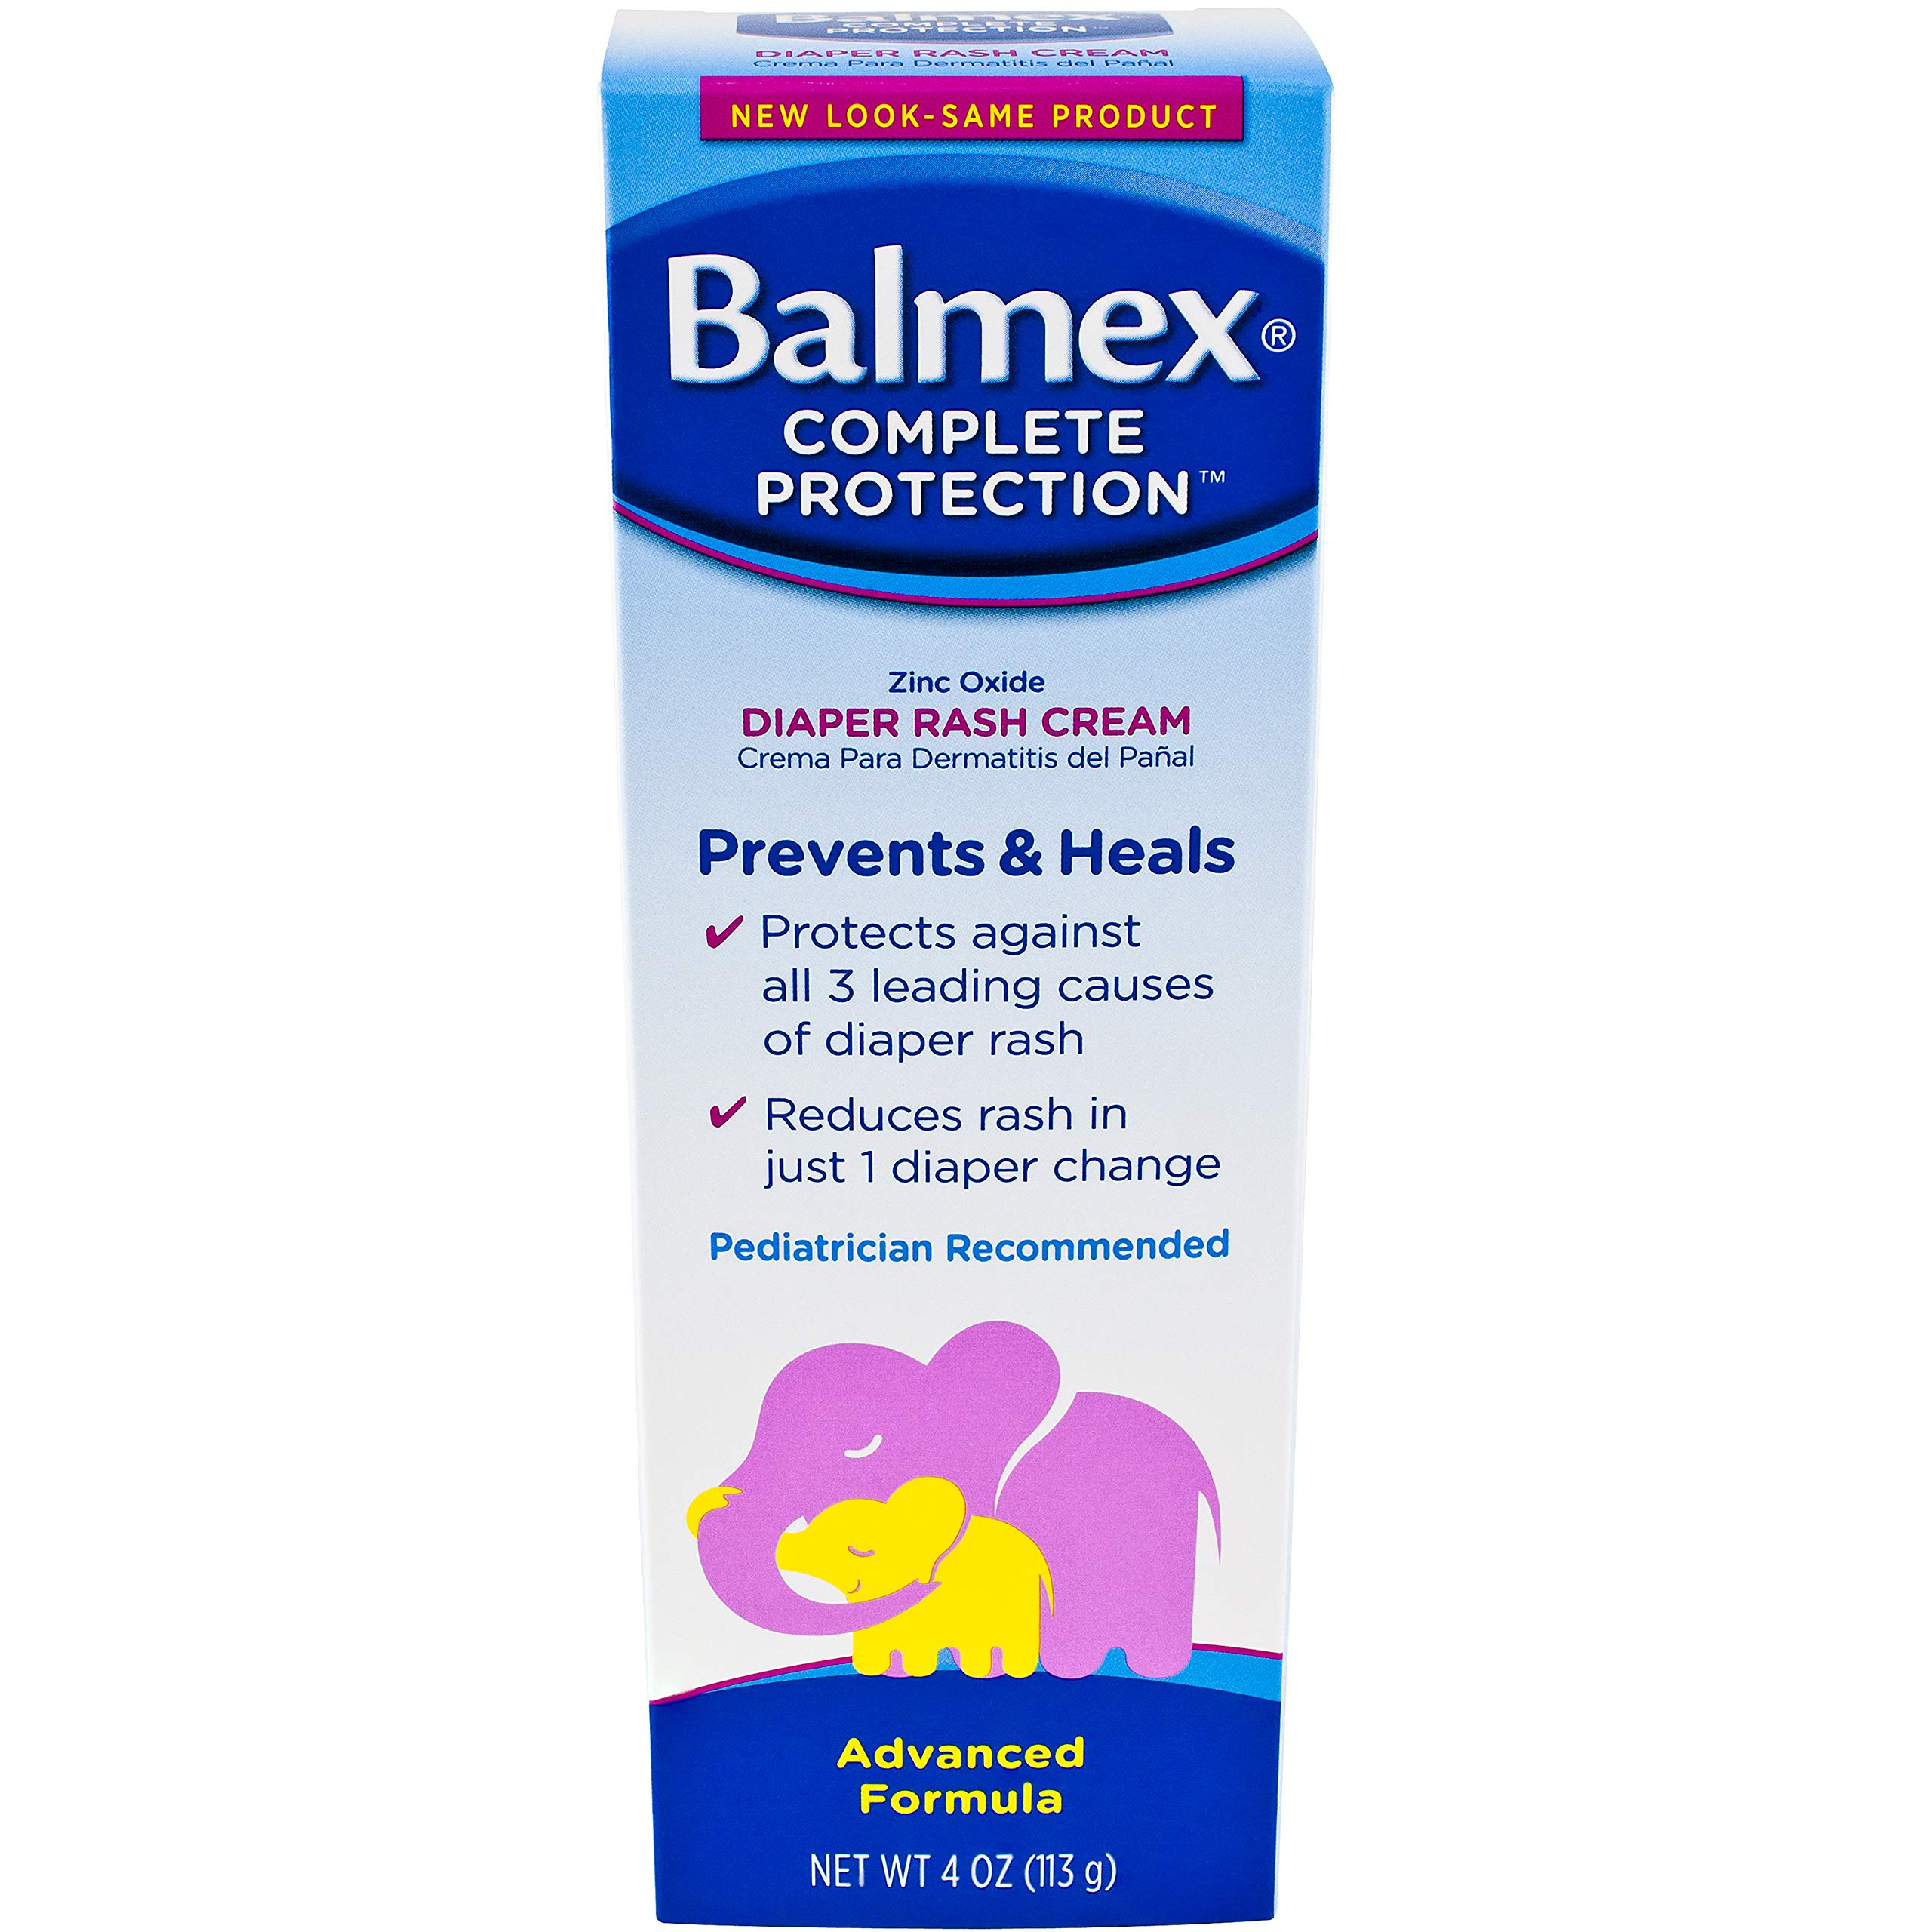 Balmex Diaper Rash Cream, 4 Count by Balmex